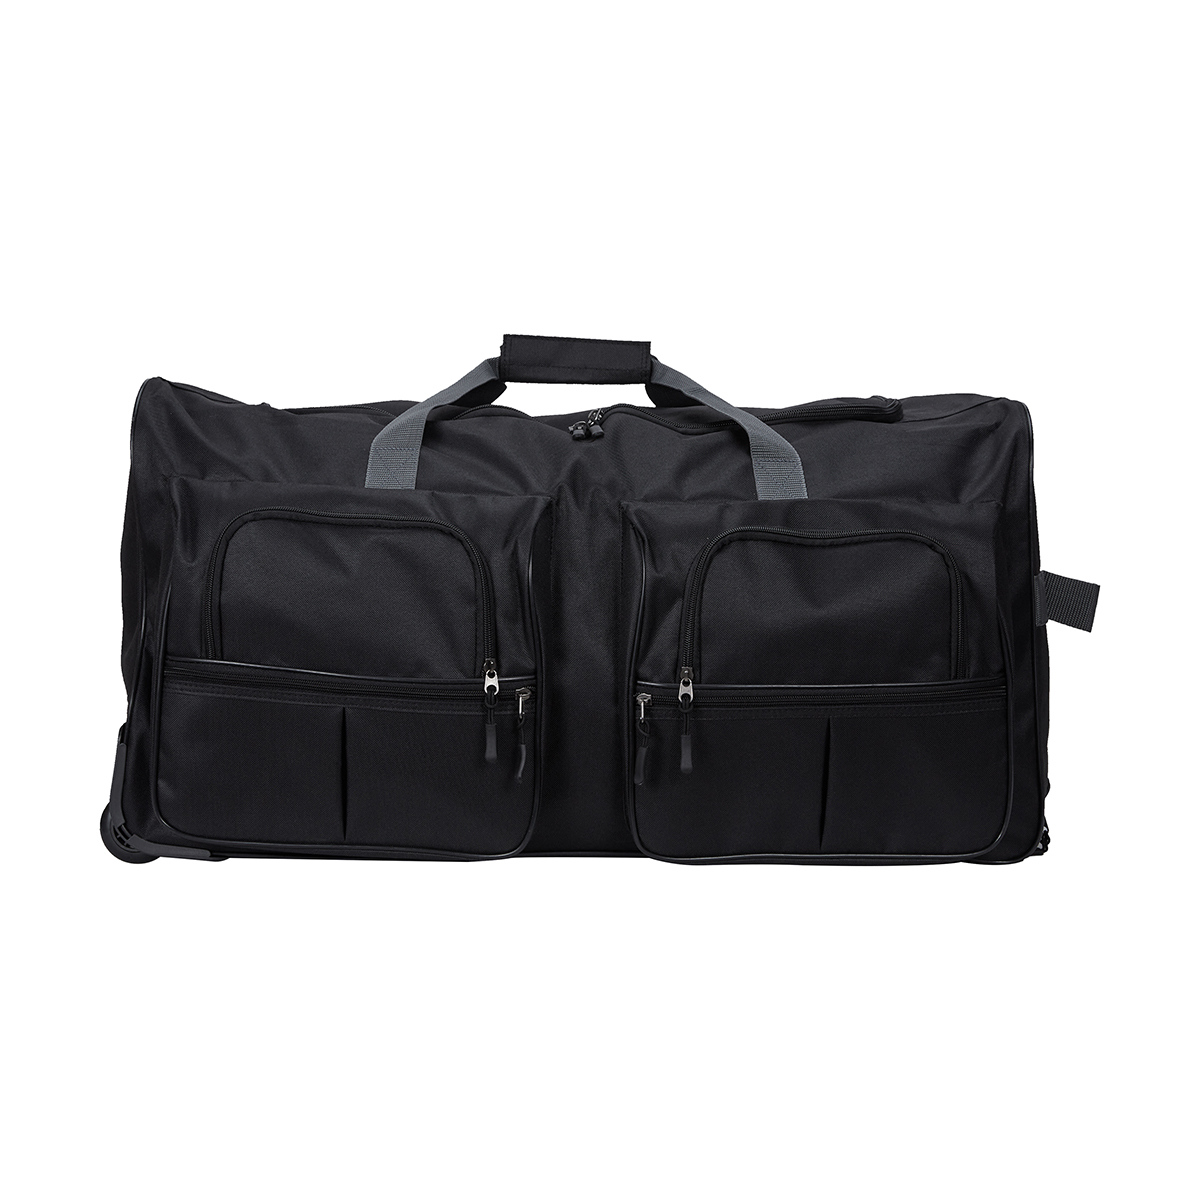 Travel Bag Kmart Duffle Bag With Wheels Kmart